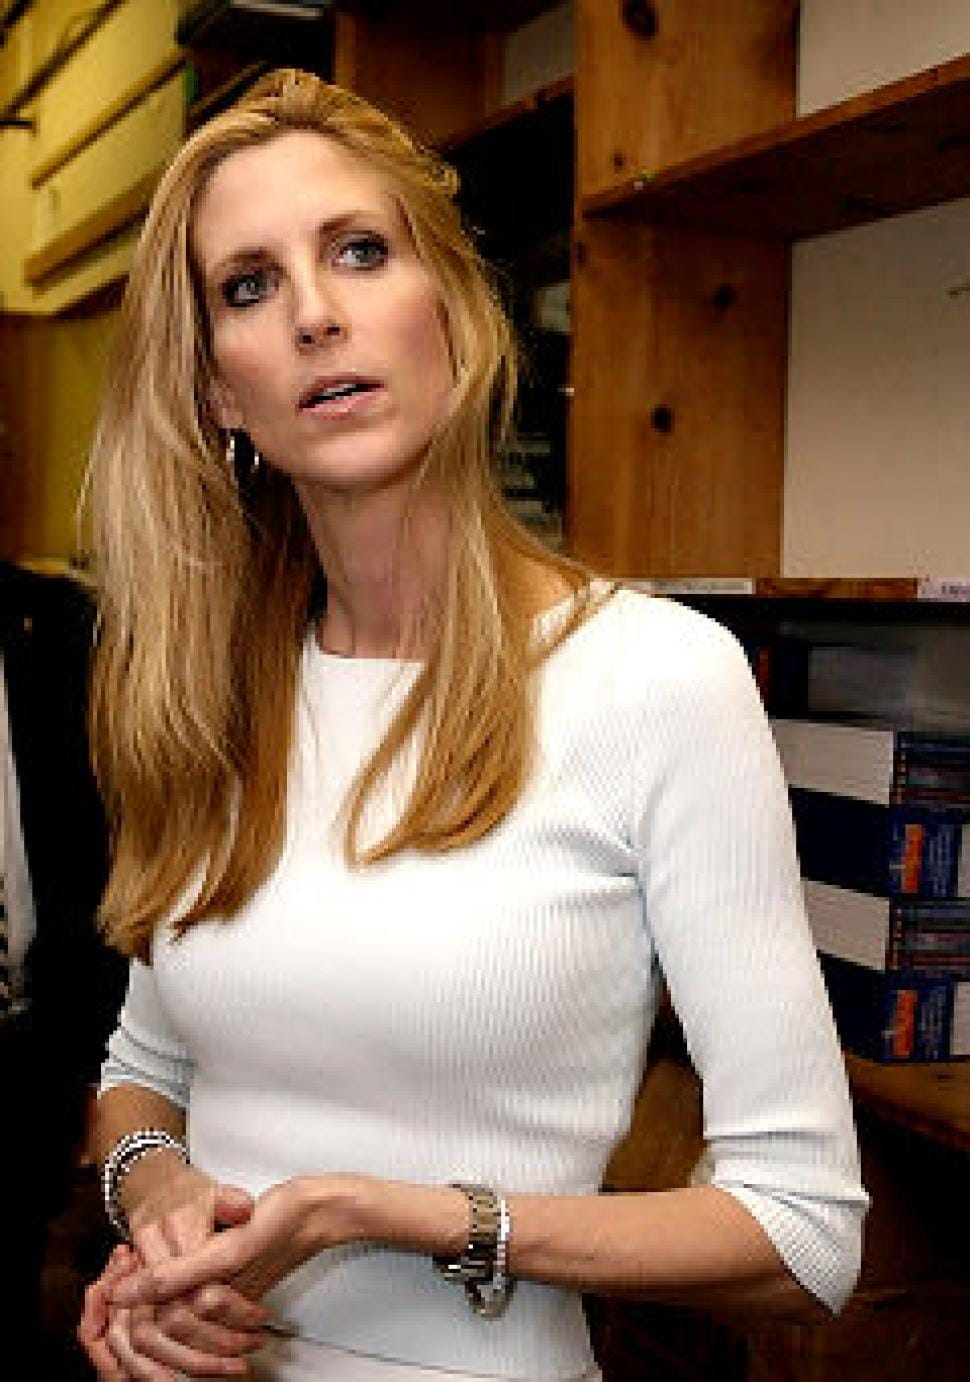 Ann Coulter AnnCoulter) Twitter Fake ann coulter photos